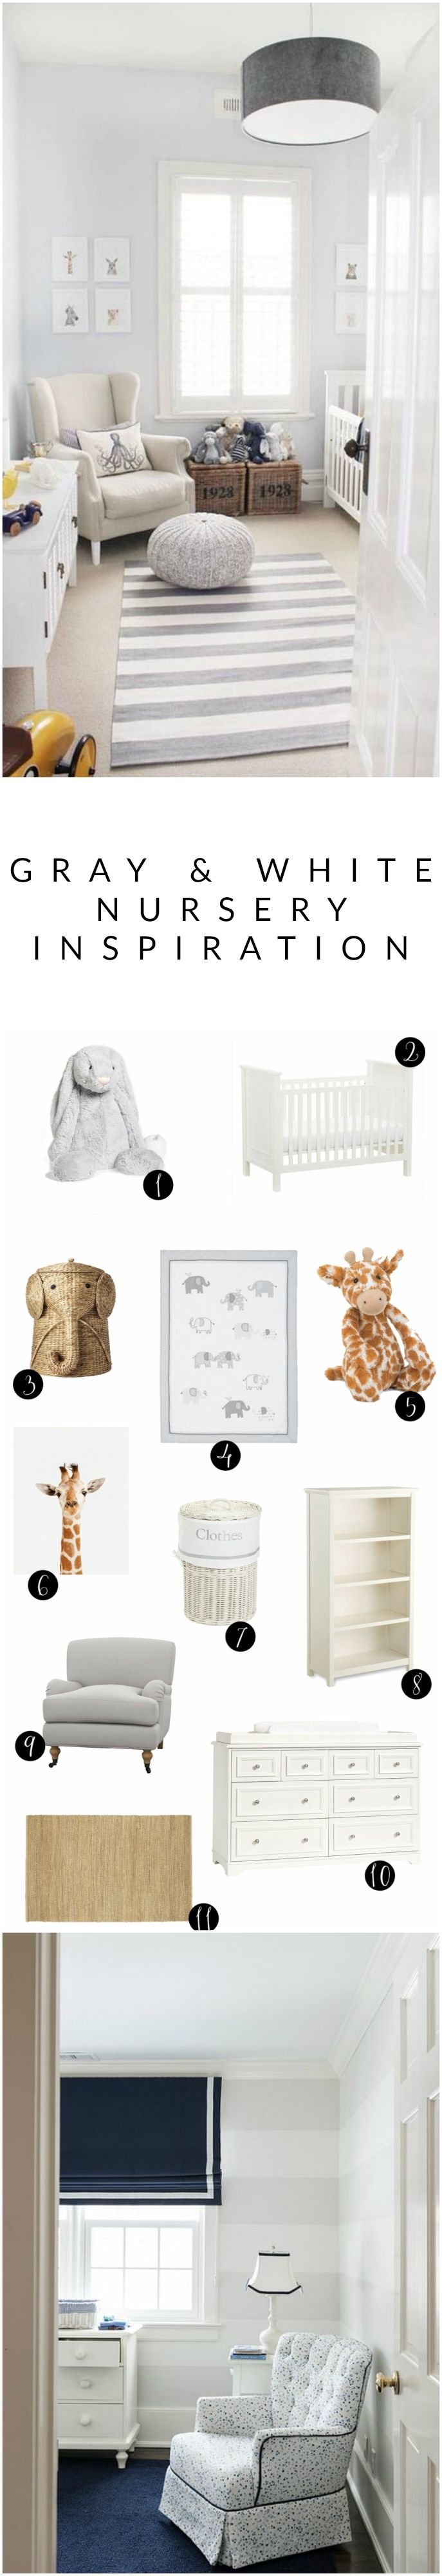 Gray and white nursery inspiration.